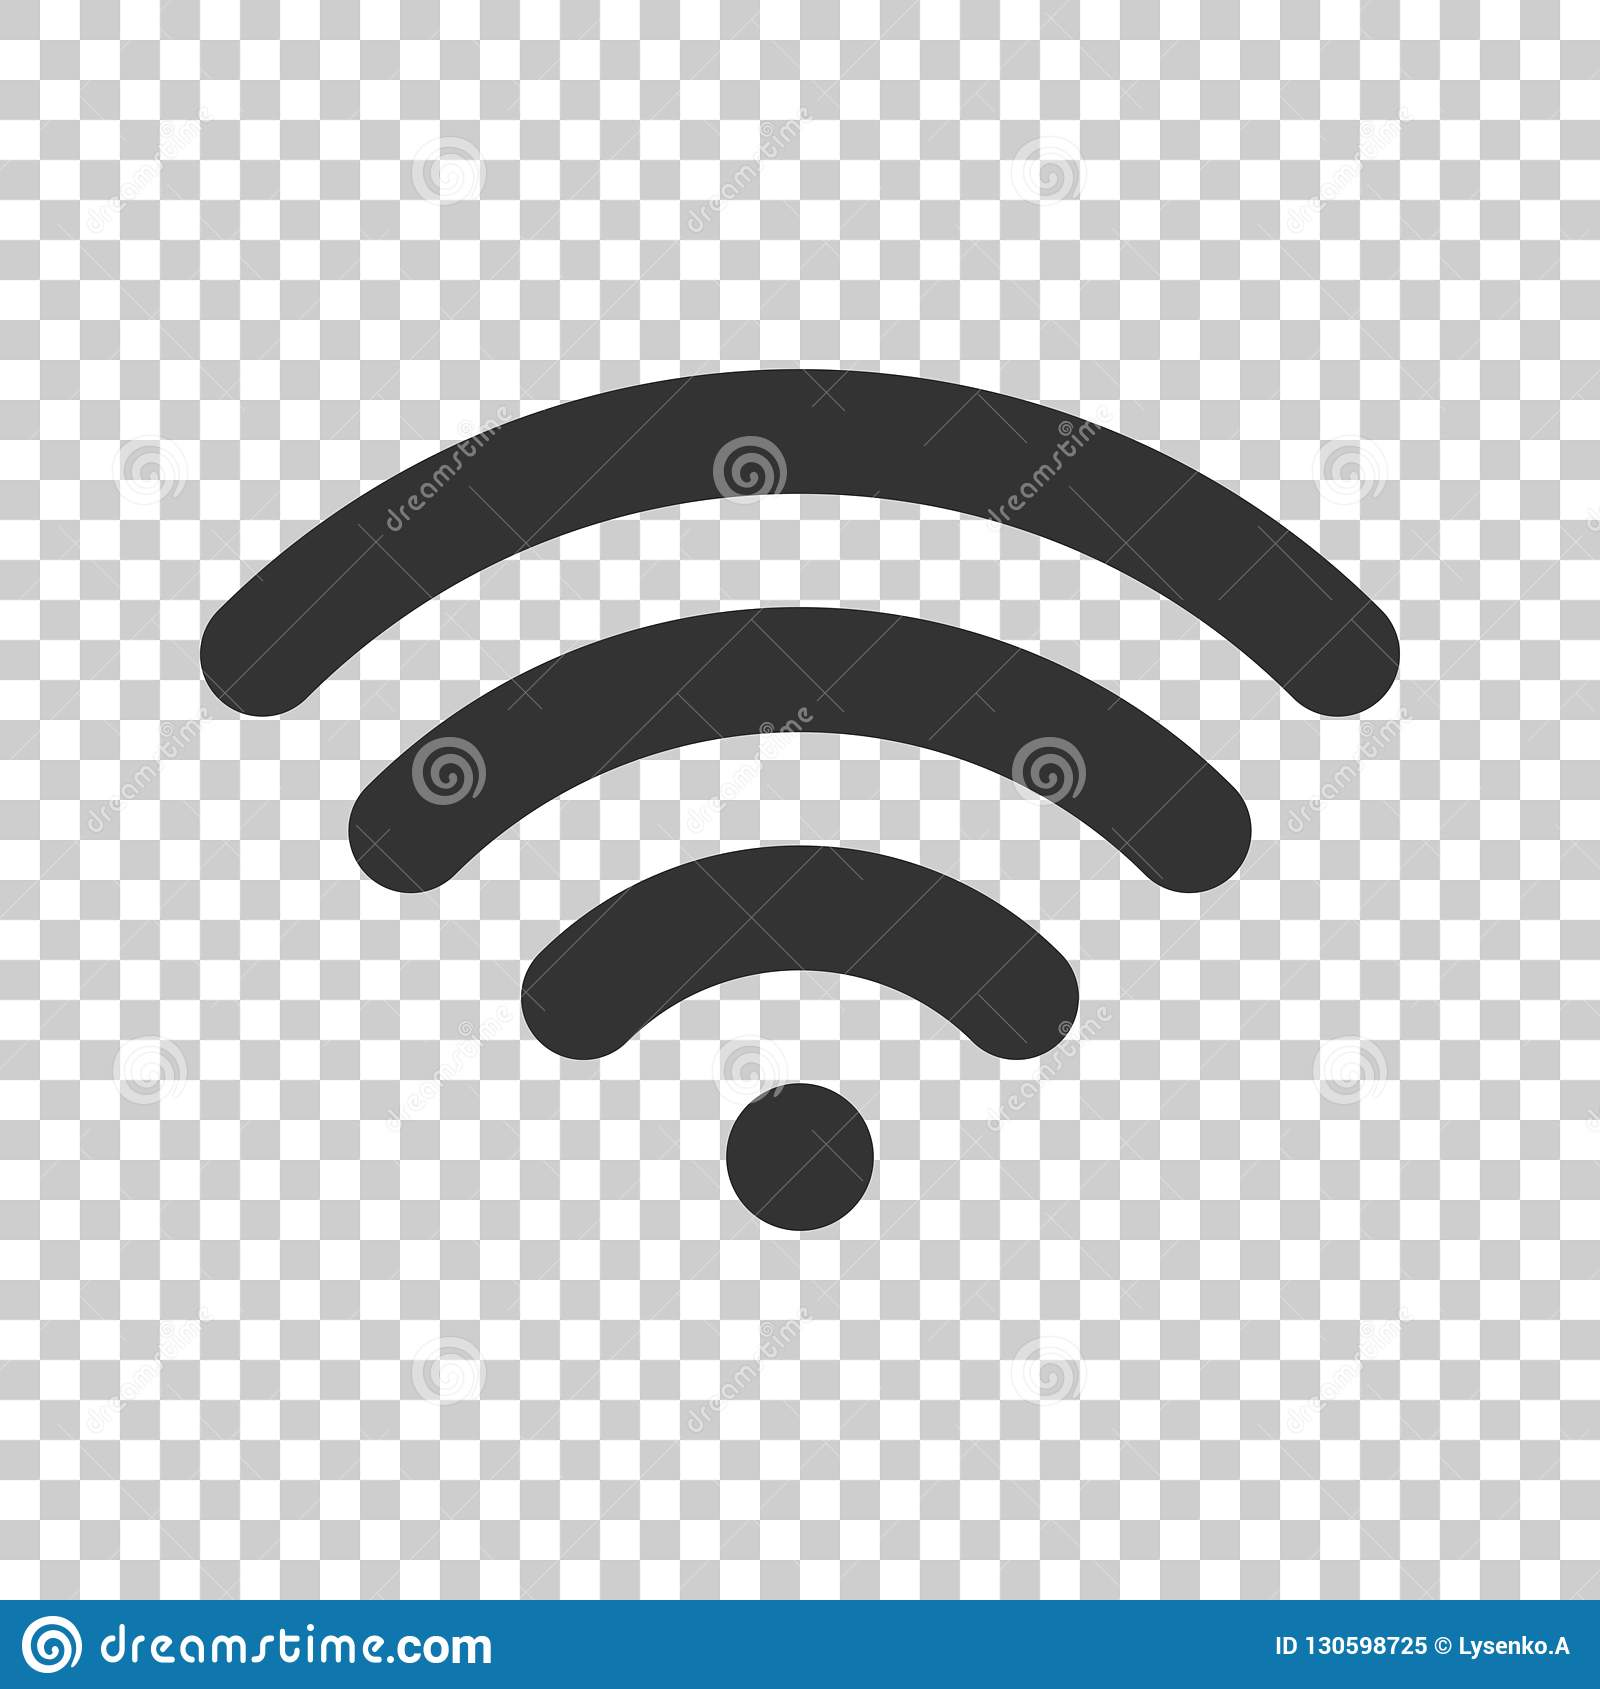 Wifi internet sign icon in flat style. Wi-fi wireless technology